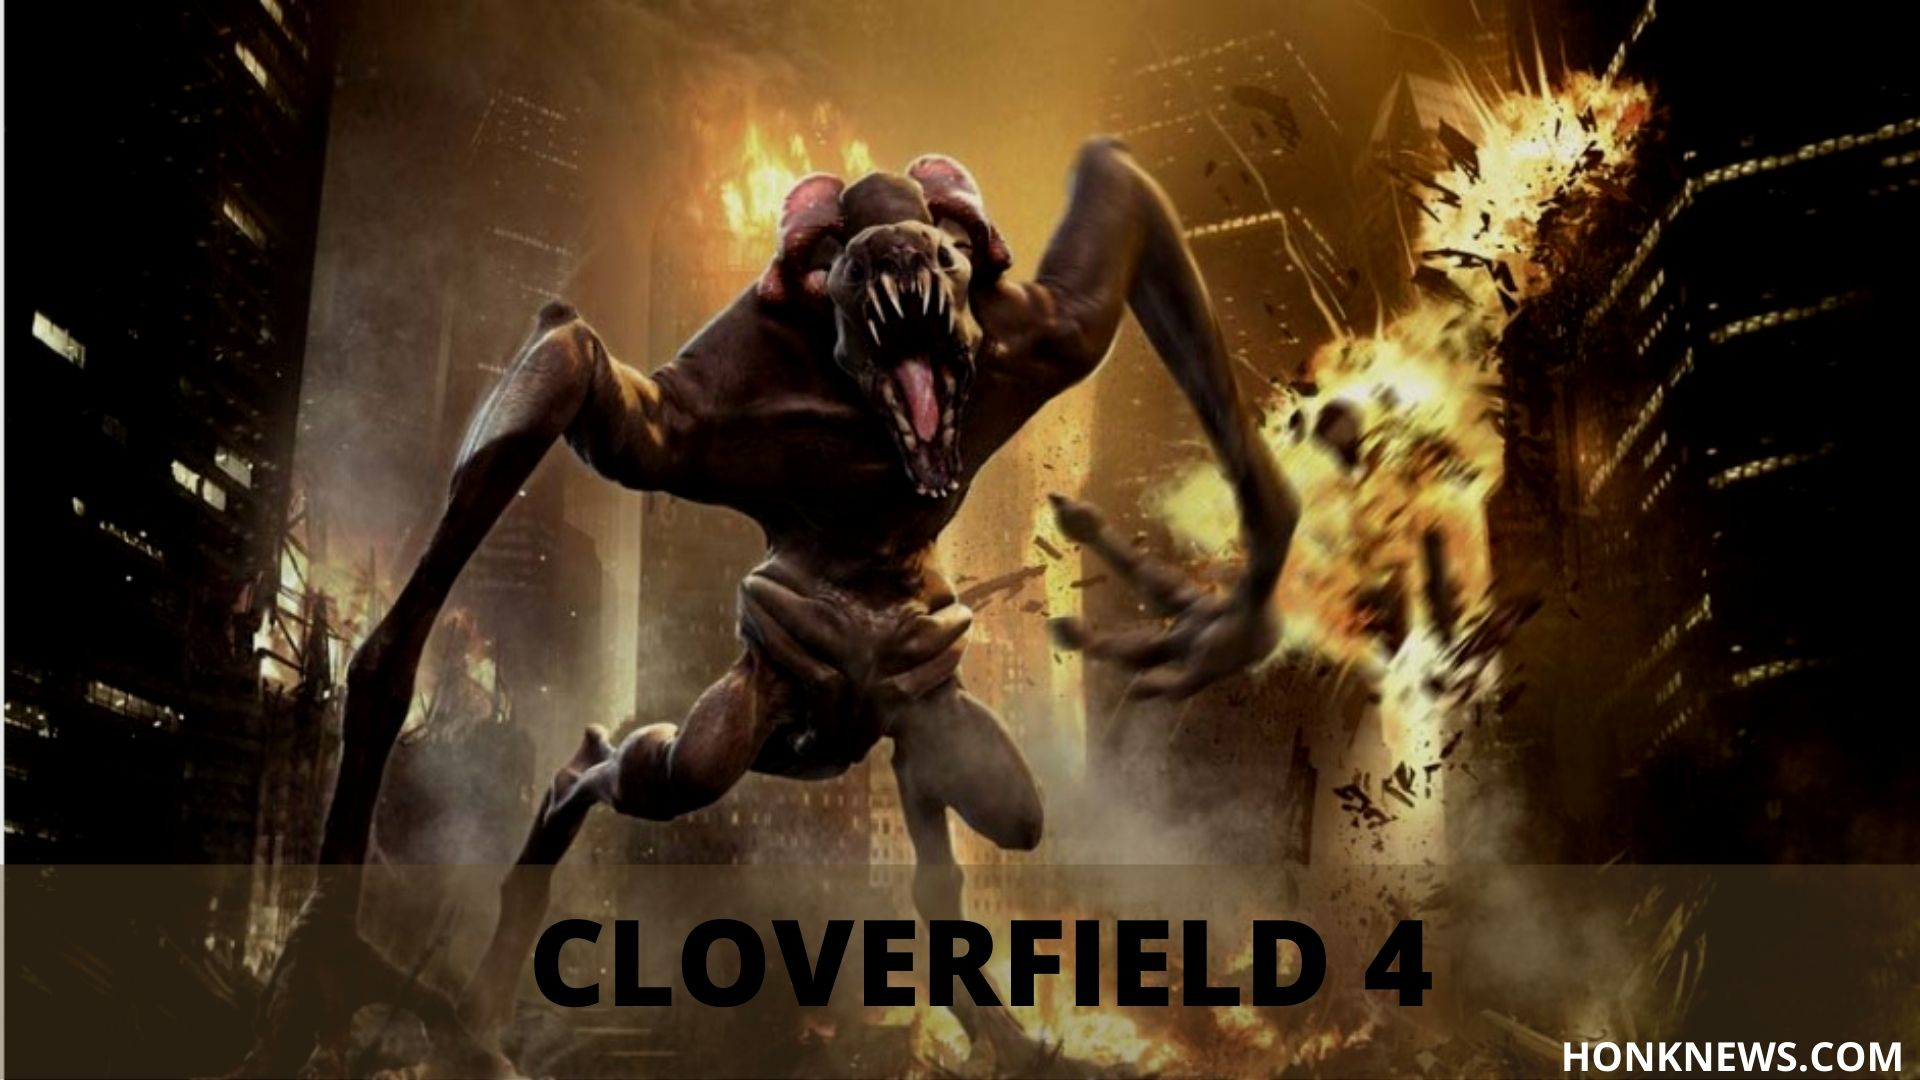 Cloverfield 4 Is Actually Happening! Check Out All The Details You Need To Know